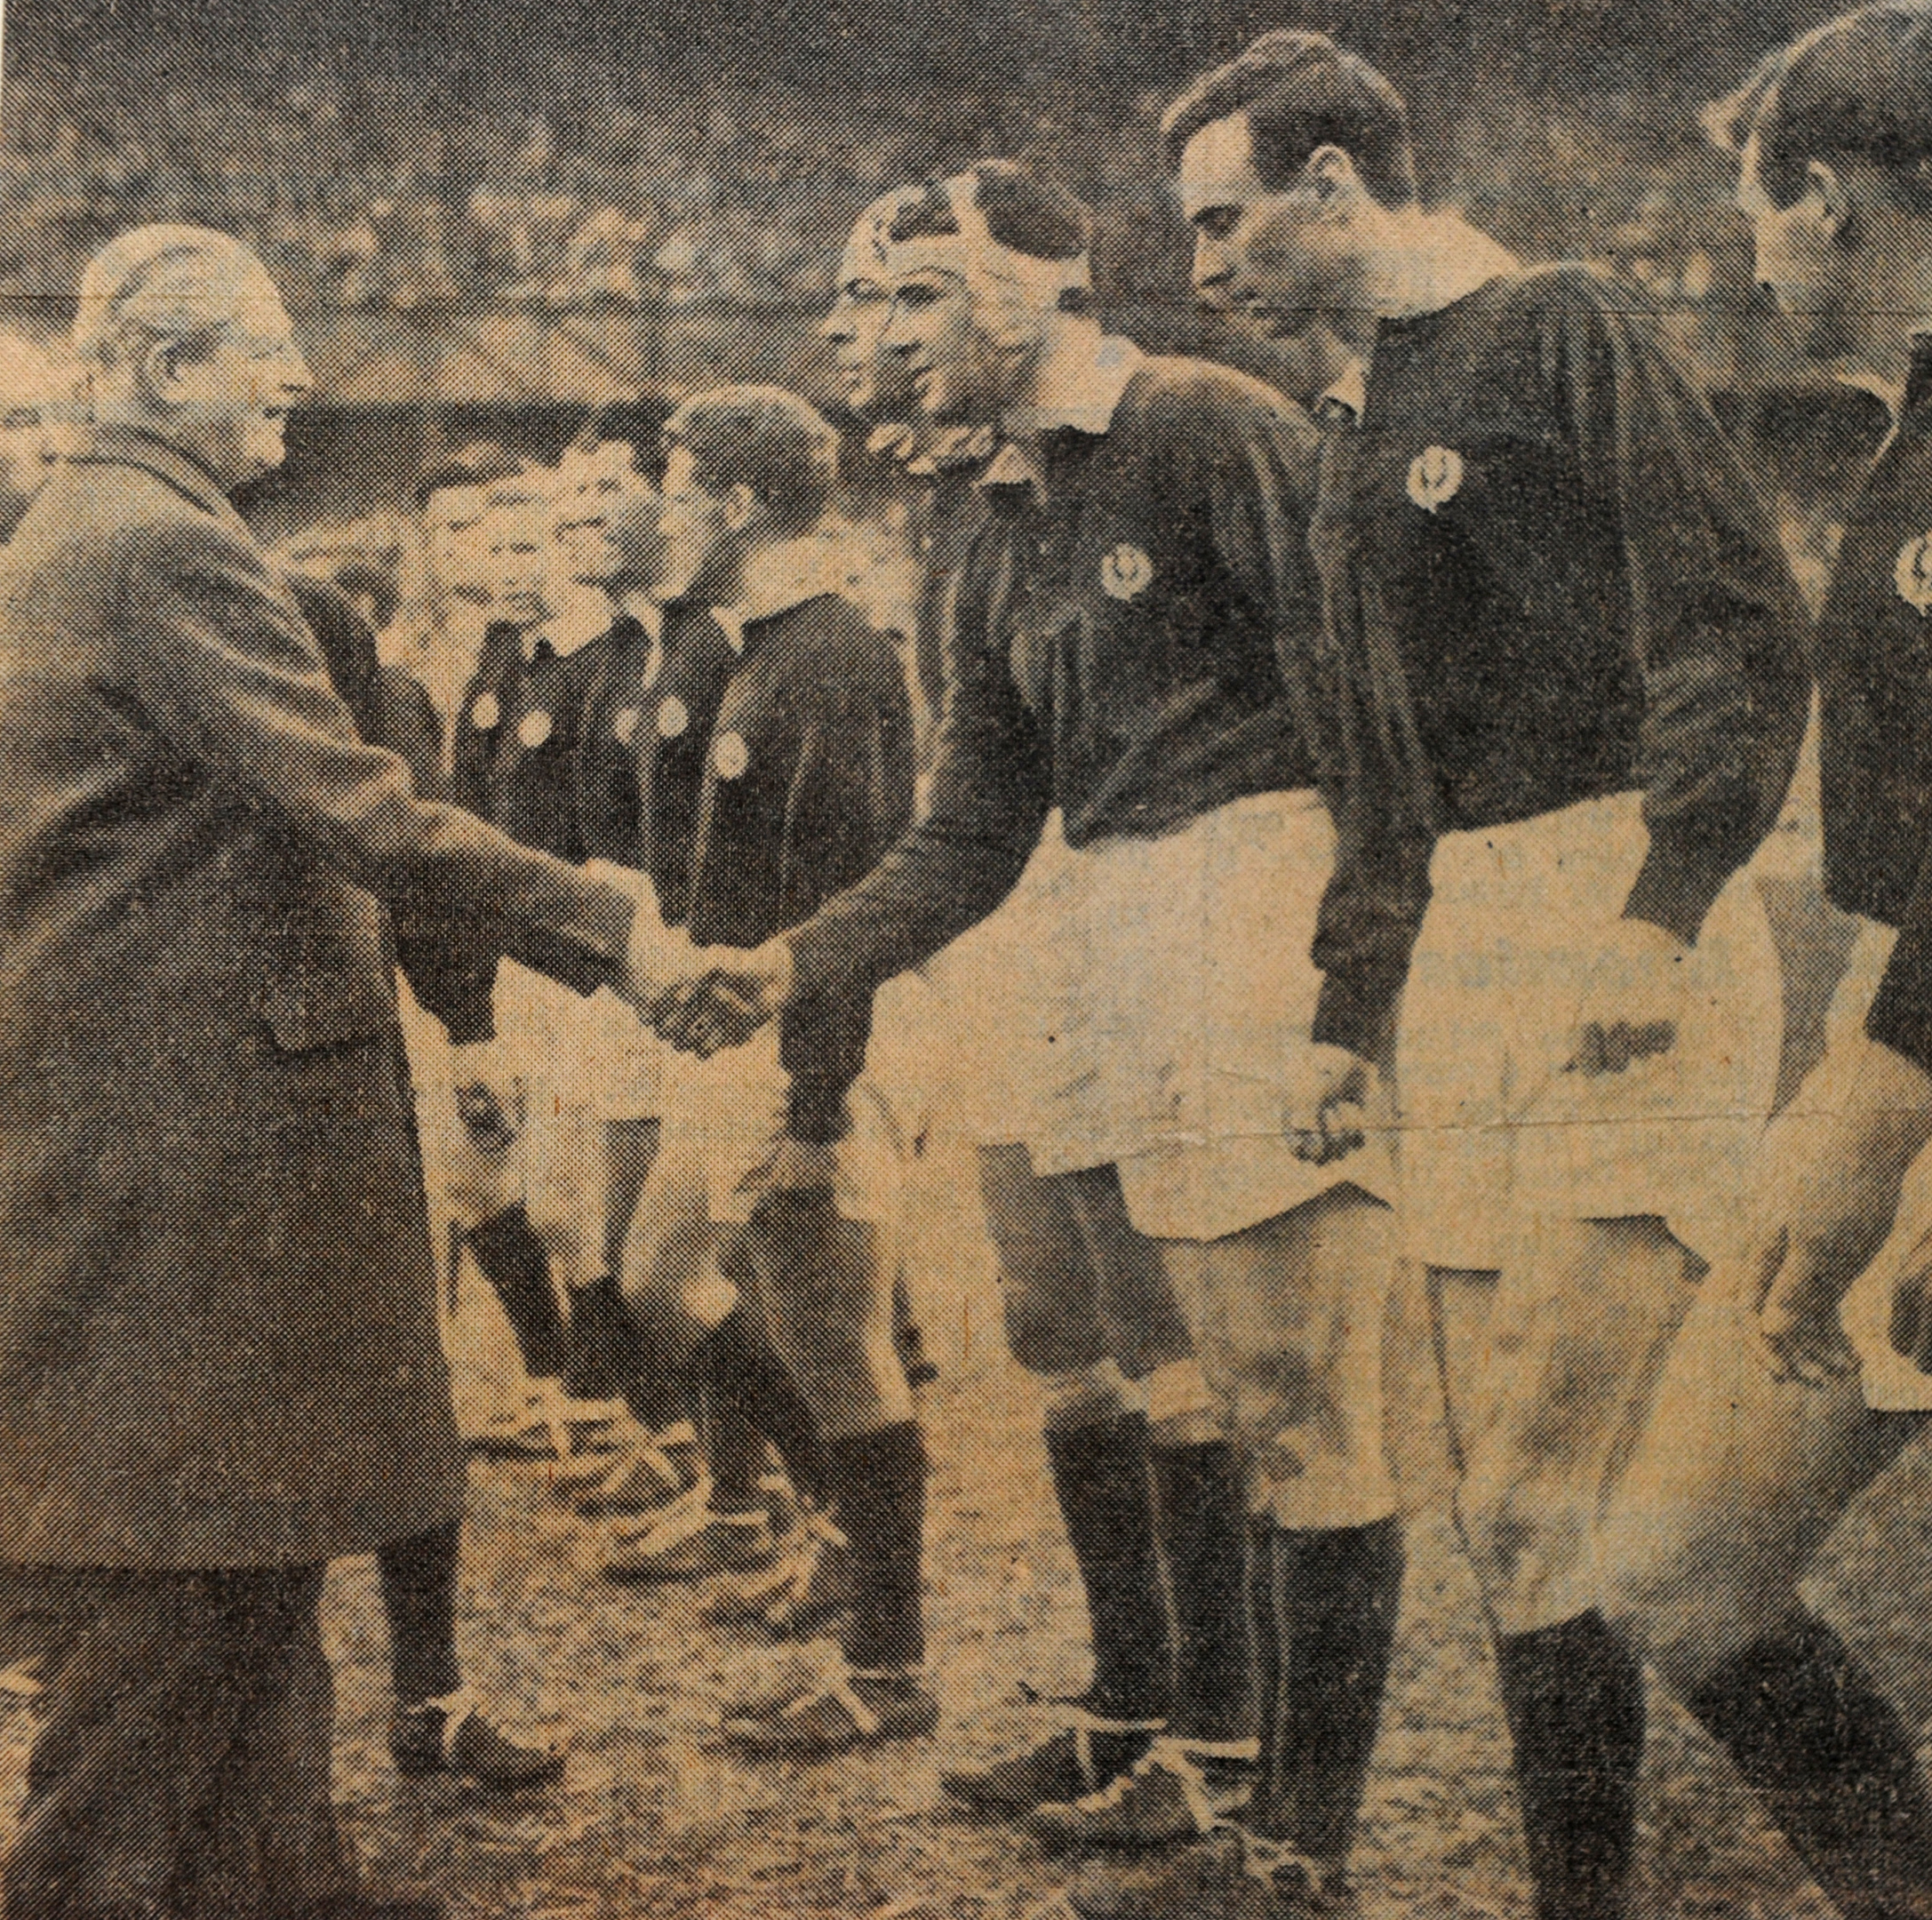 Frans shaking hands with Prime Minister Harold MacMillan before the Calcutta Cup match at Twickenham against England Frans Herman Ten Bos was an English-born rugby union footballer, of Dutch ancestry. He played for Scotland as a lock in the 1960s, and was capped seventeen times. He is arguably the most successful Dutch rugby player prior to Tim Visser and the professional era. Frans at his home near Kirriemuir. Picture Robert Perry The Scotsman 8th Nov 2012 Frans Herman Ten Bos was an English-born rugby union footballer, of Dutch ancestry. He played for Scotland as a lock in the 1960s, and was capped seventeen times. He is arguably the most successful Dutch rugby player prior to Tim Visser and the professional era. Frans at his home near Kirriemuir. Picture Robert Perry The Scotsman 8th Nov 2012